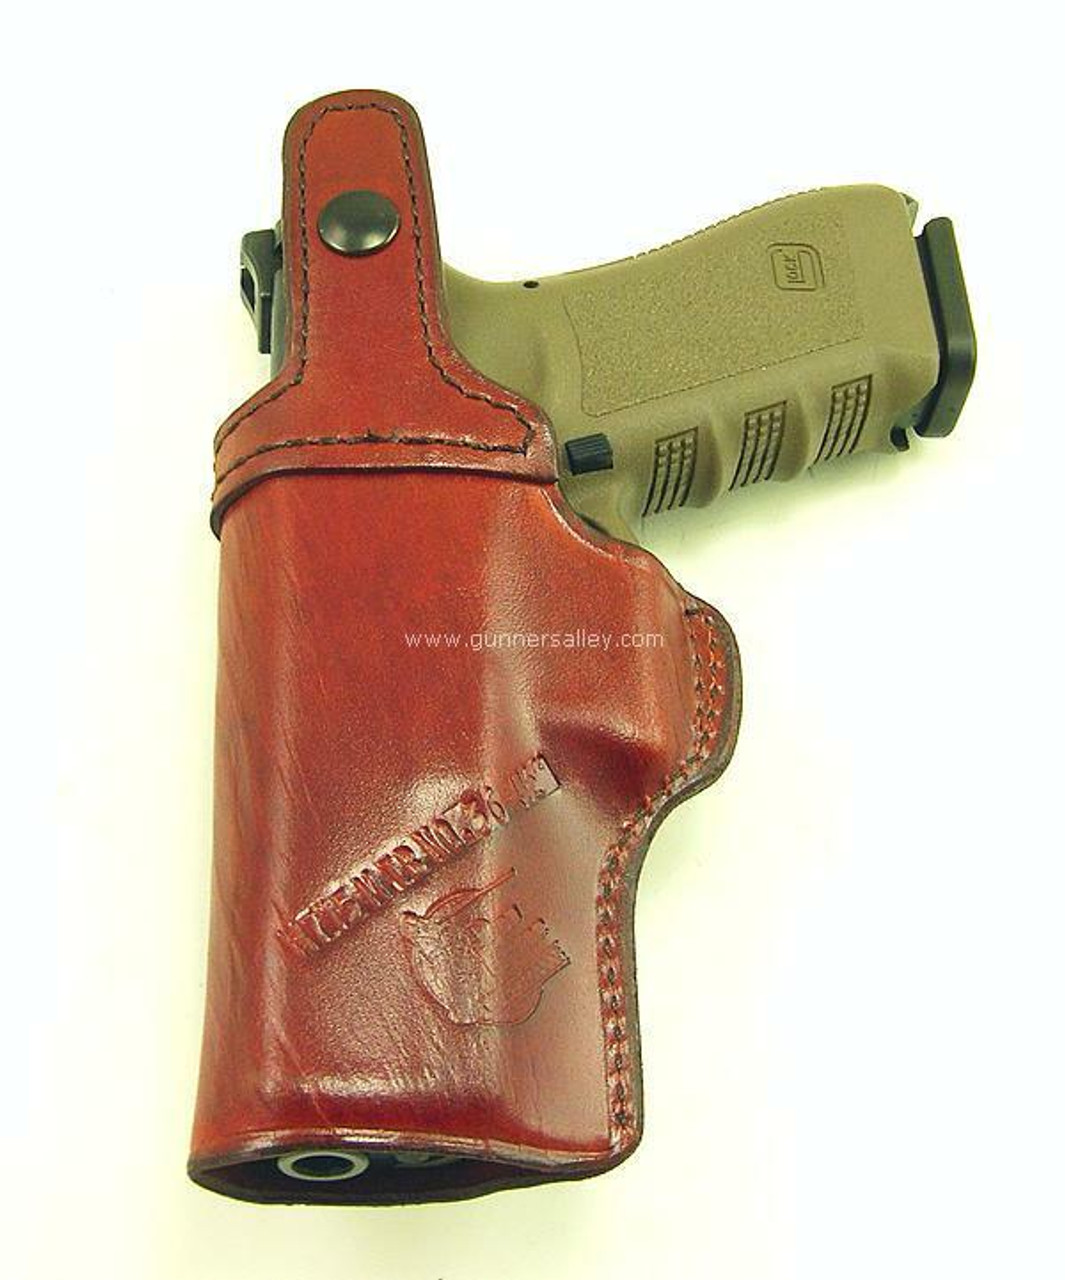 Saddle Brown - Rear View - Right Hand - Shown with a Glock 17 for Demonstration Purposes